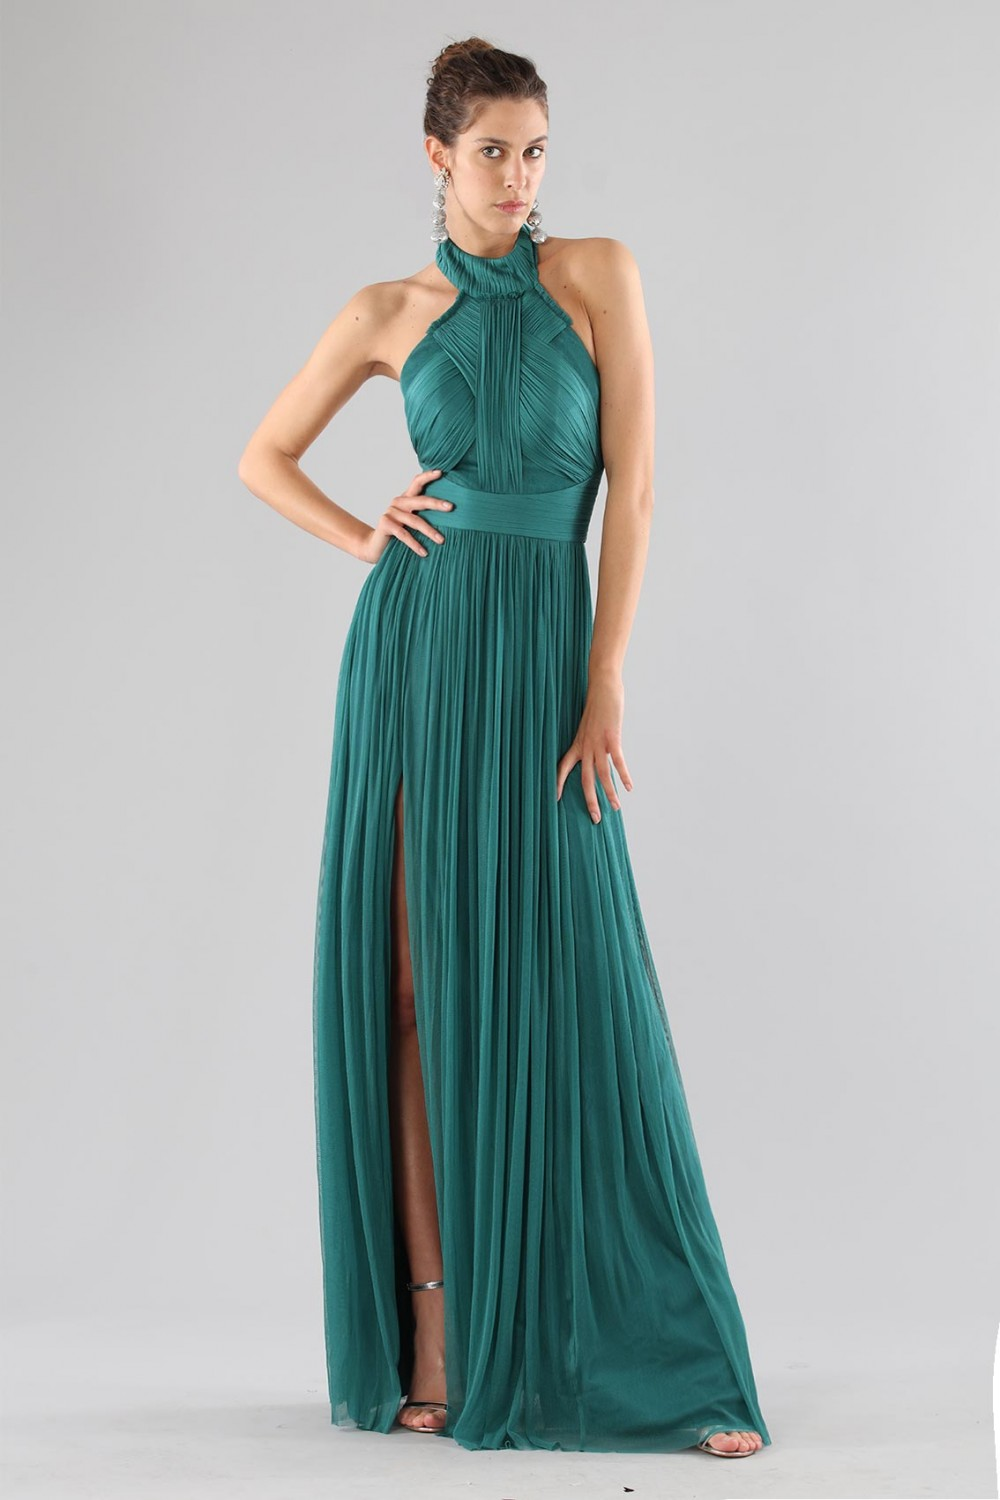 Green dress with halter neck